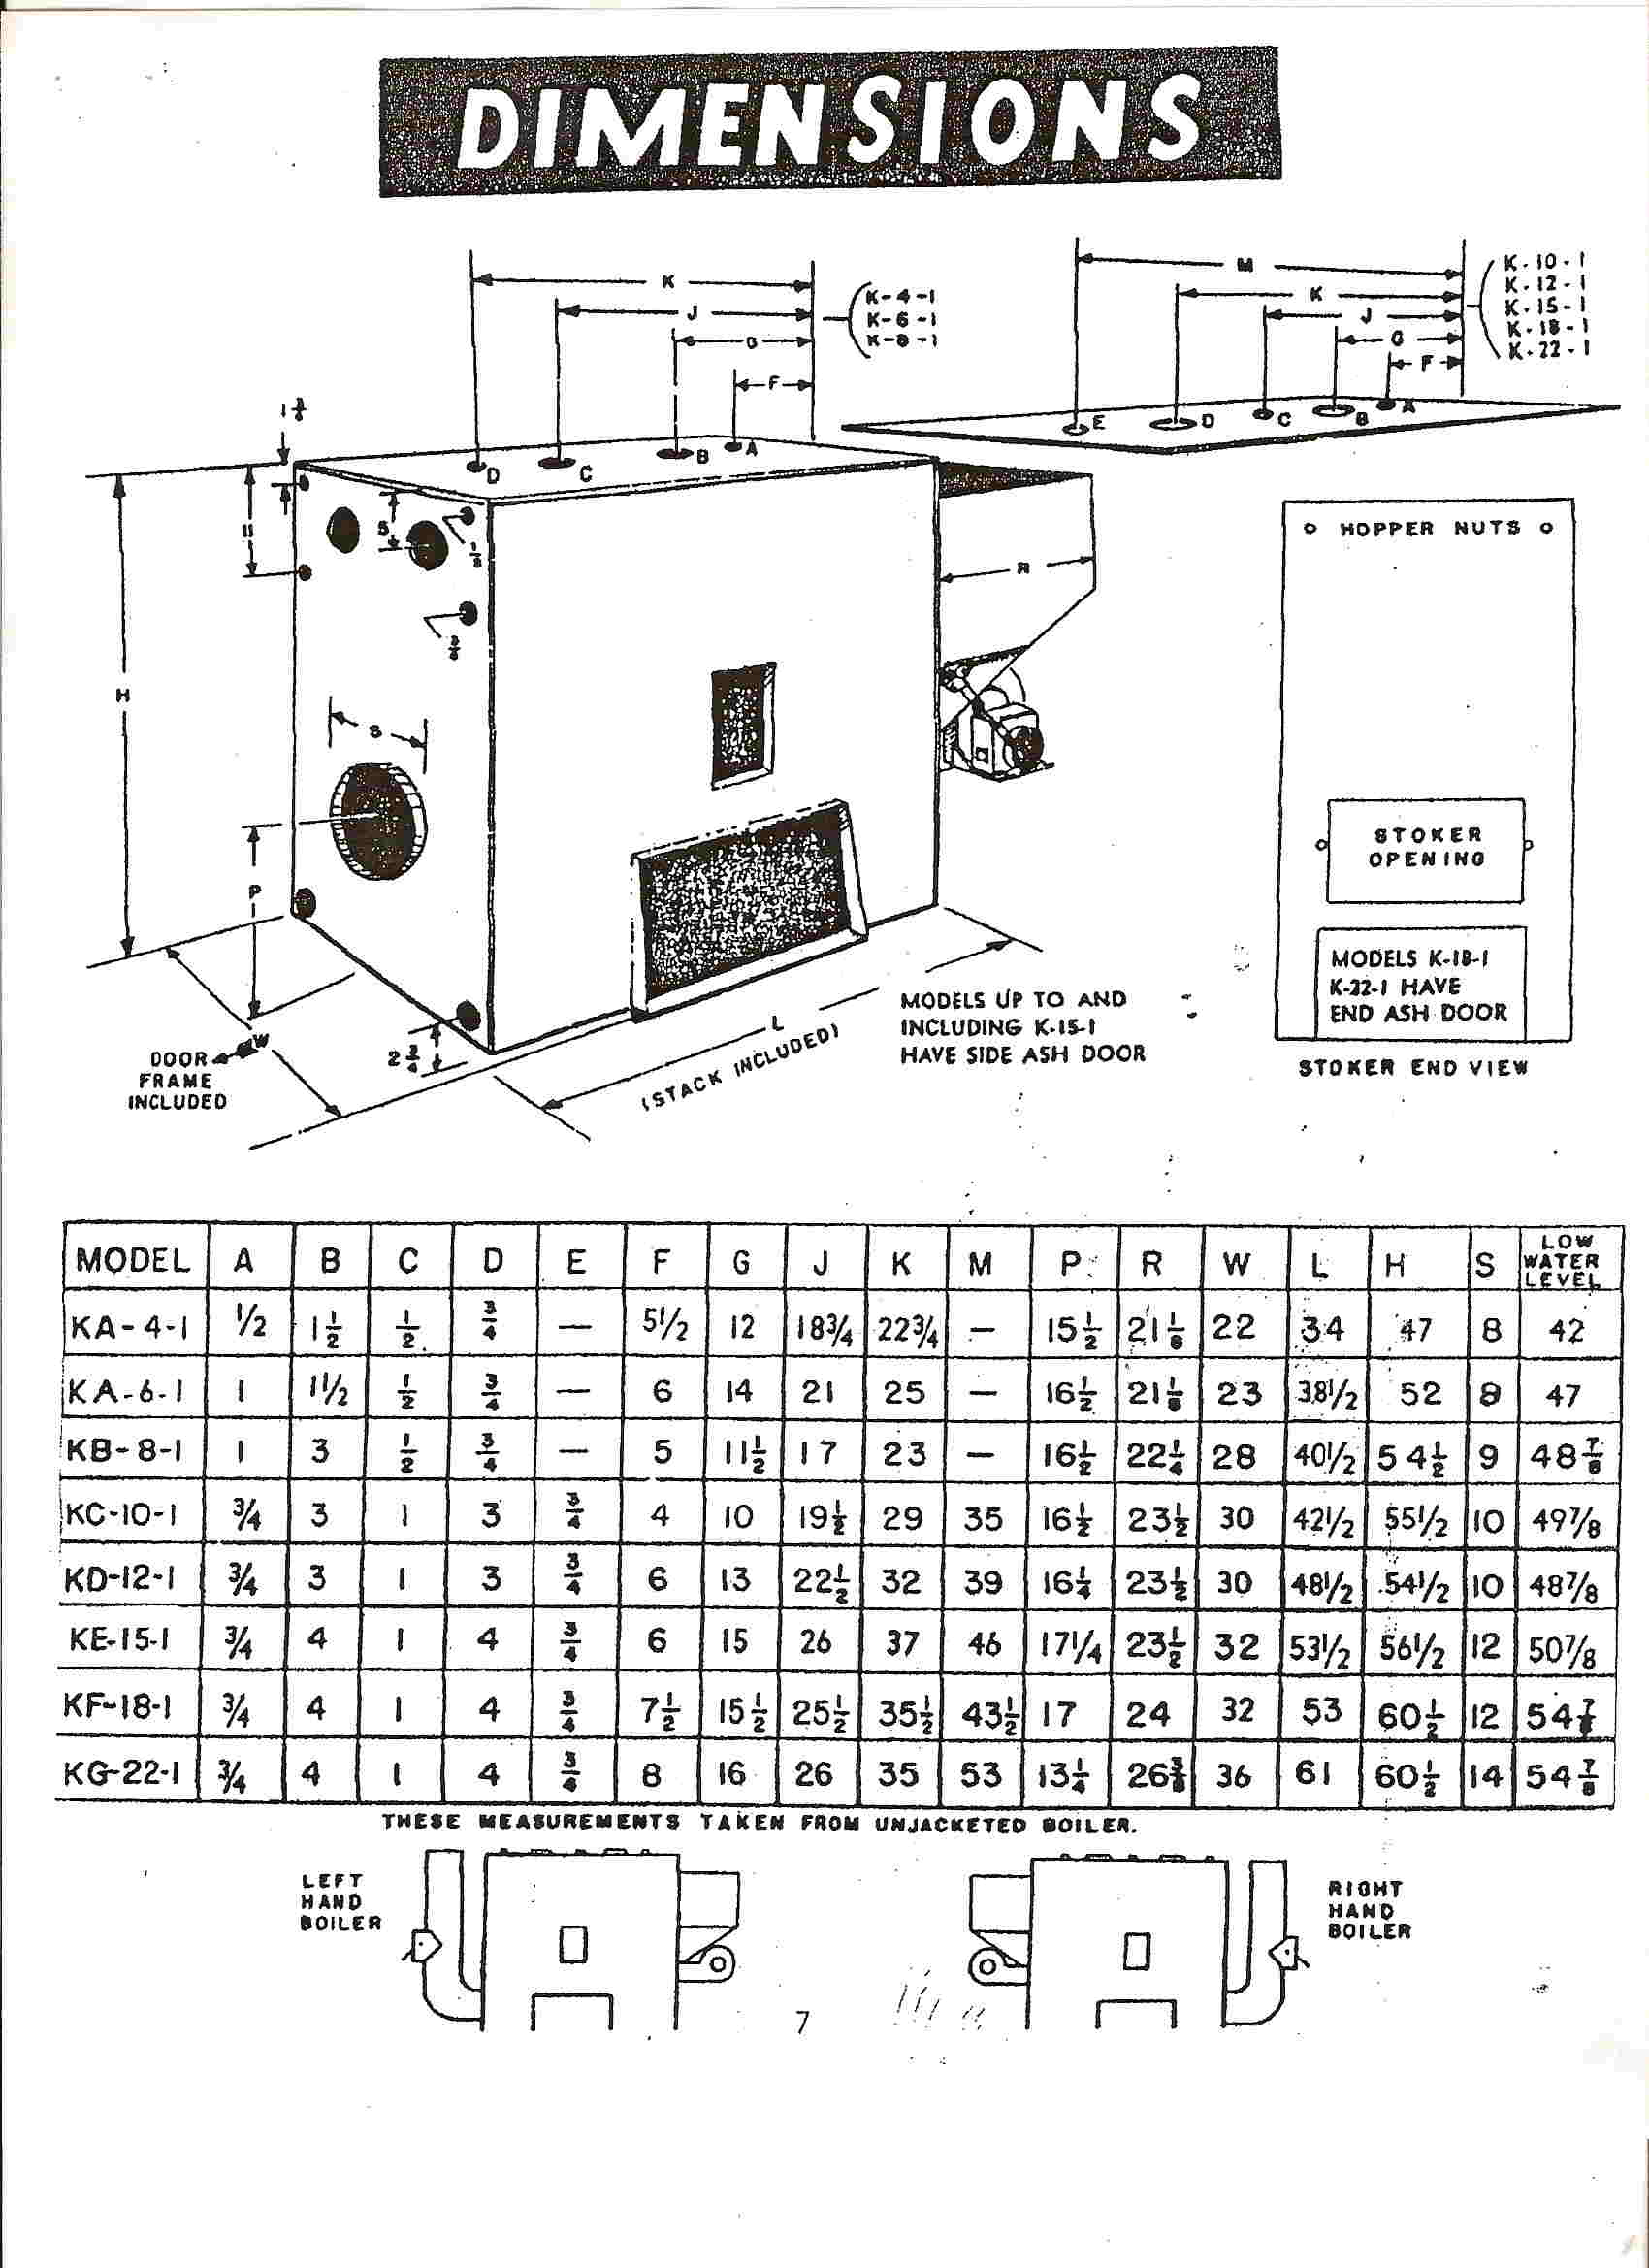 Boiler Instructions page 7.jpg